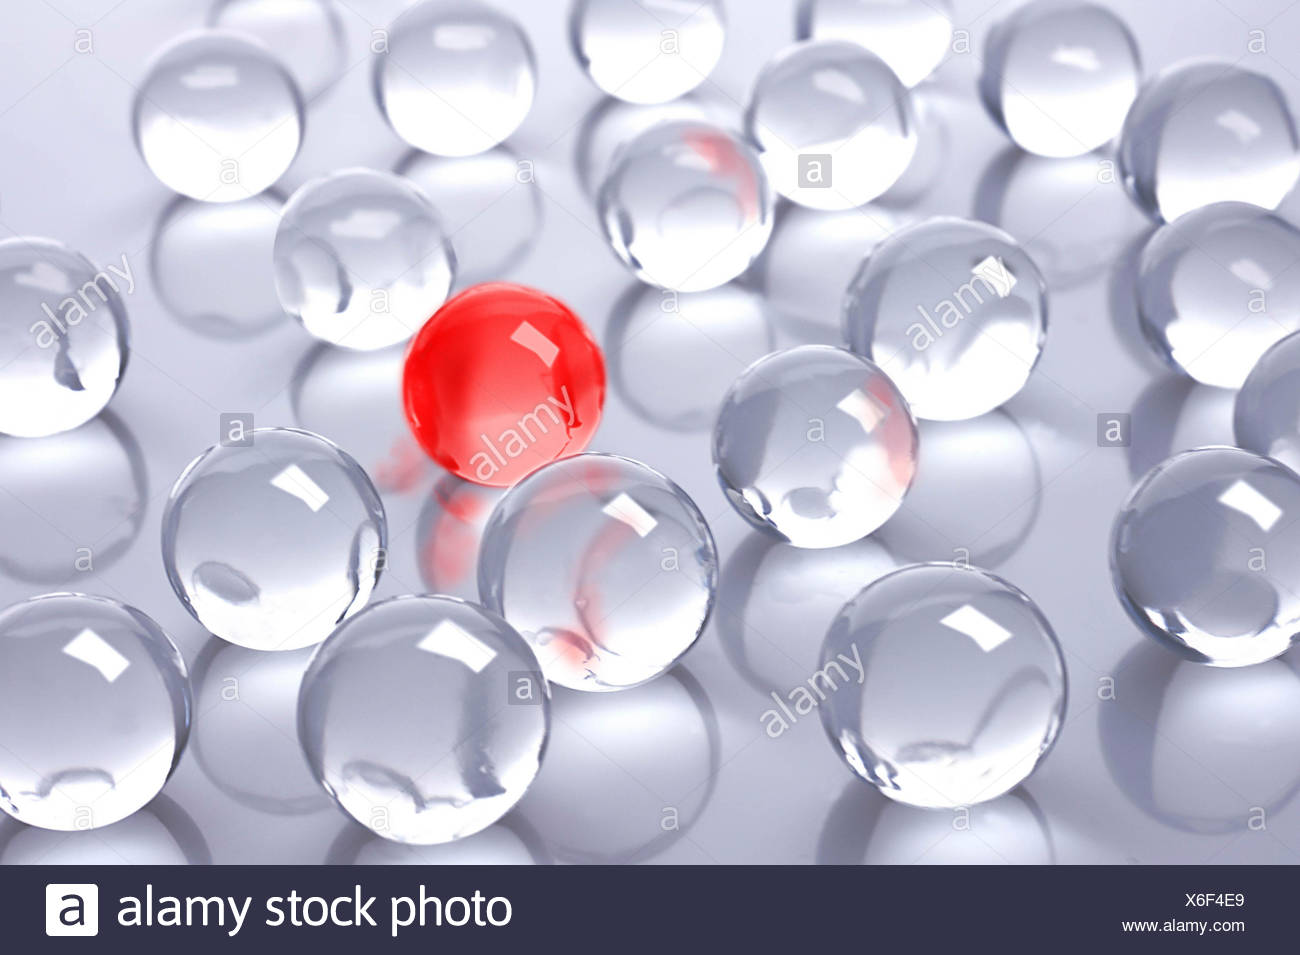 A red glass ball amidst many colourless glass balls - Stock Image